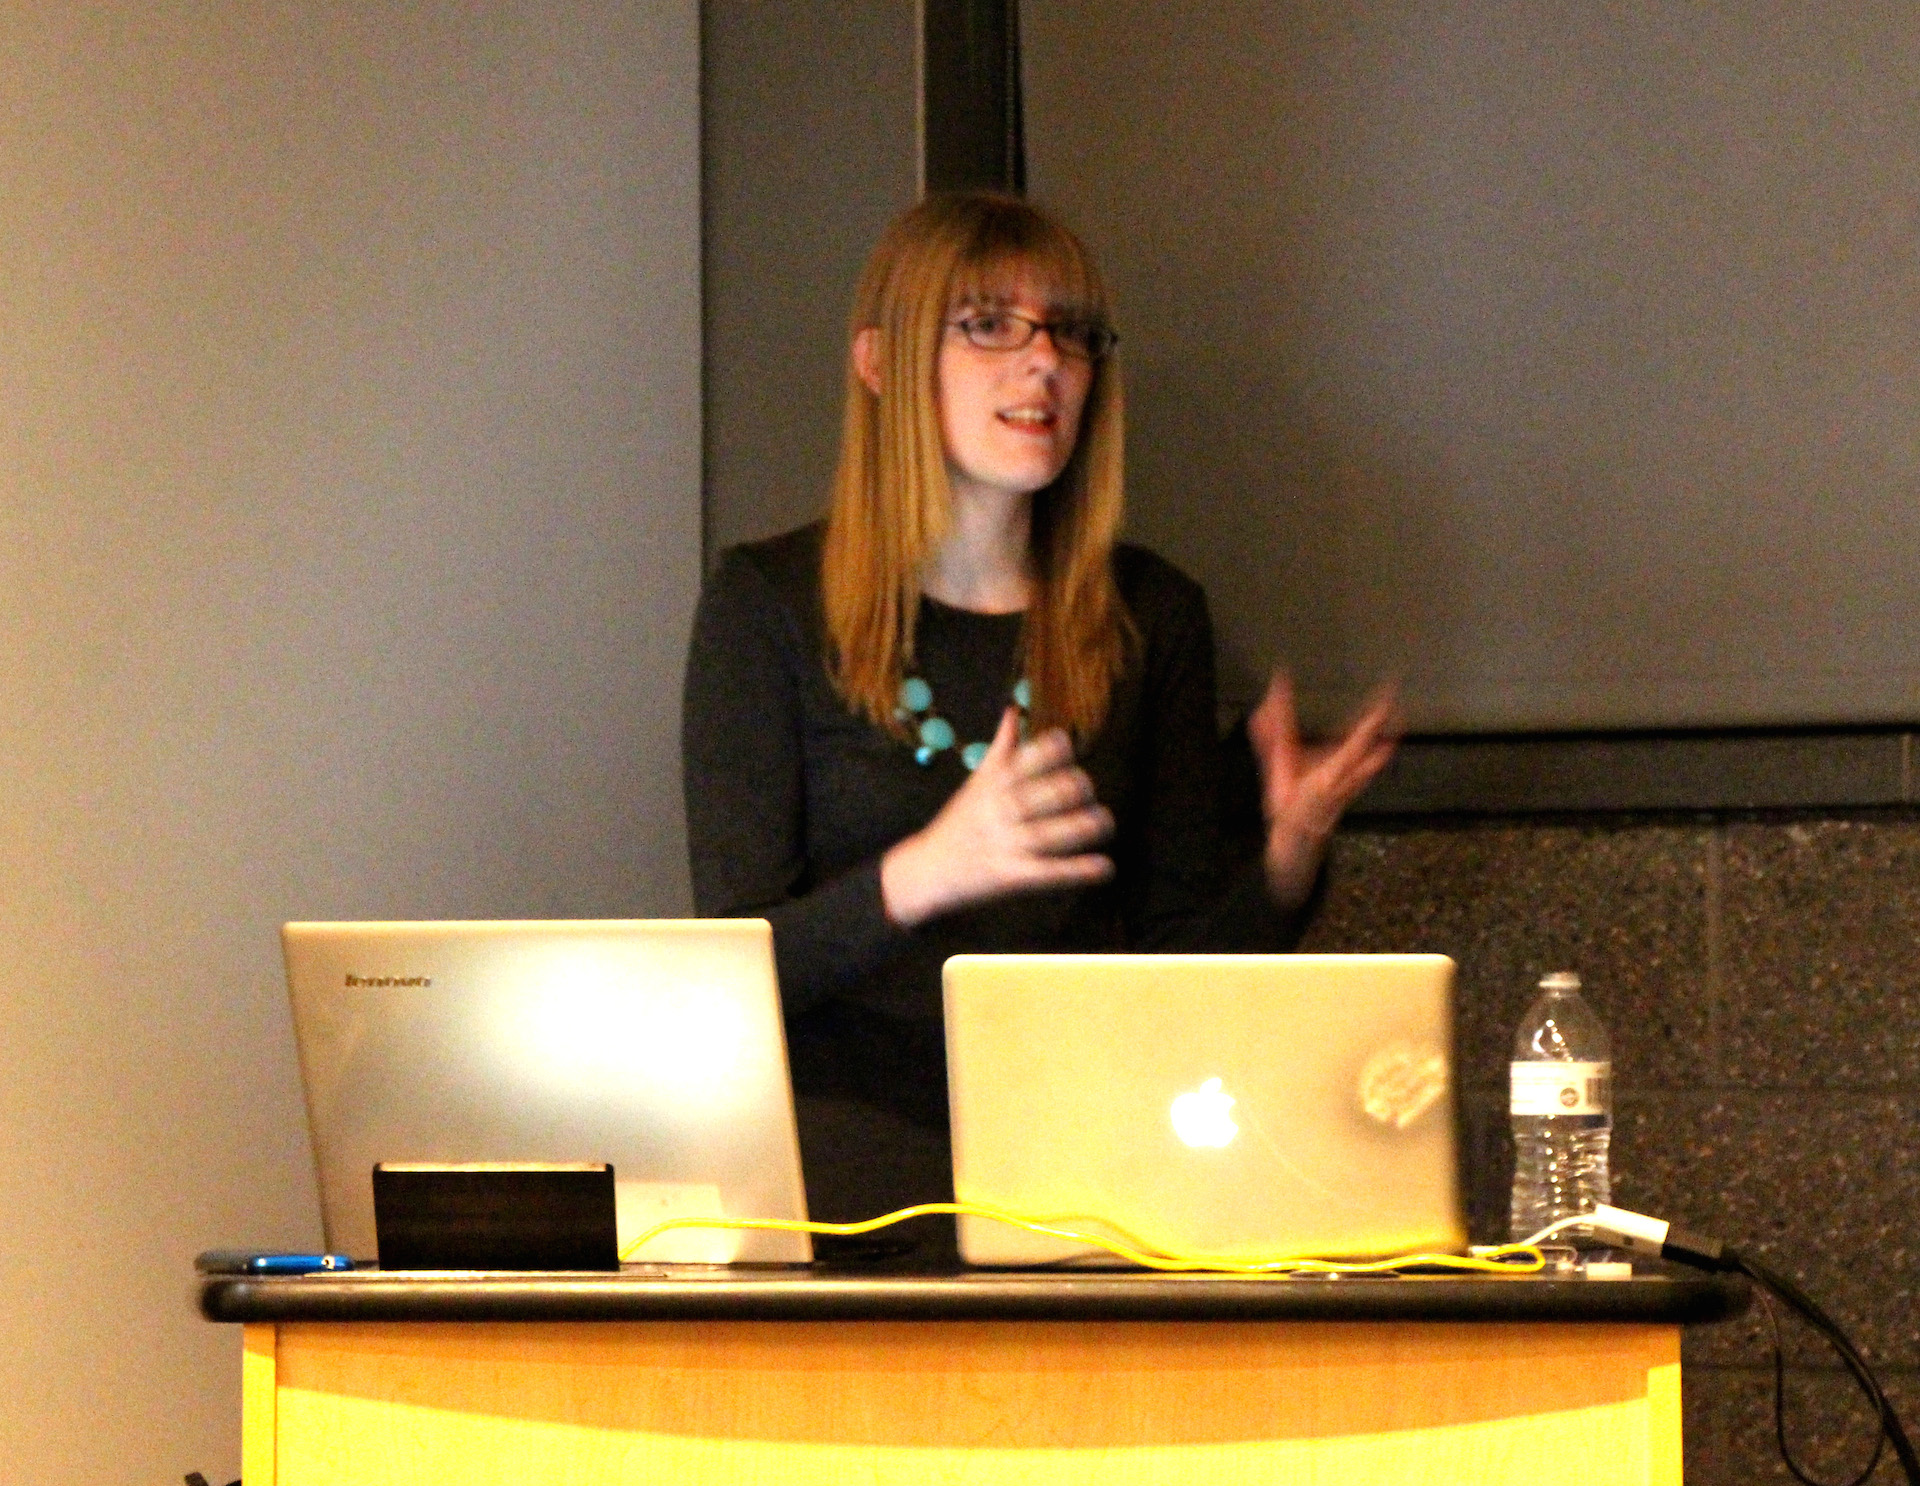 Stephanie Orme delivering her Women in Gaming talk